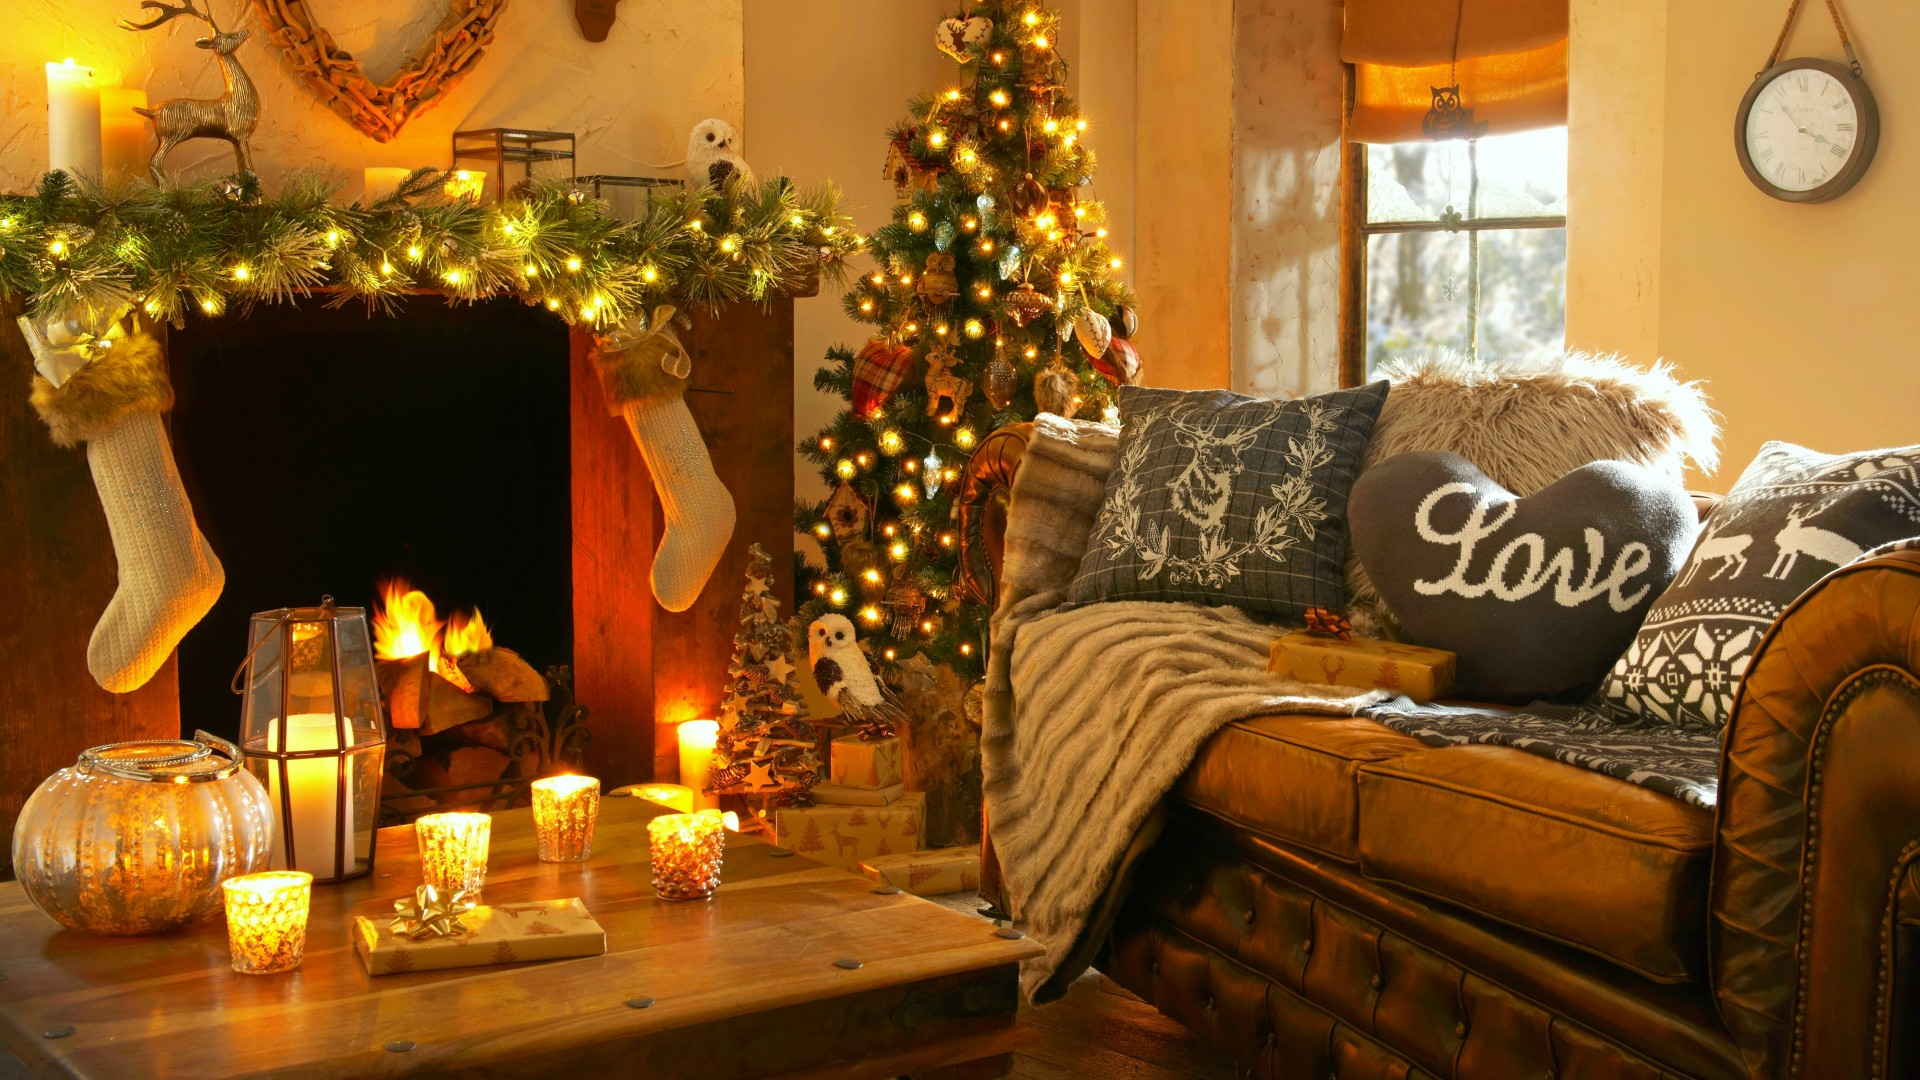 Free Animated Fireplace Wallpaper Wallpaper Christmas New Year Home Light Fire Candles